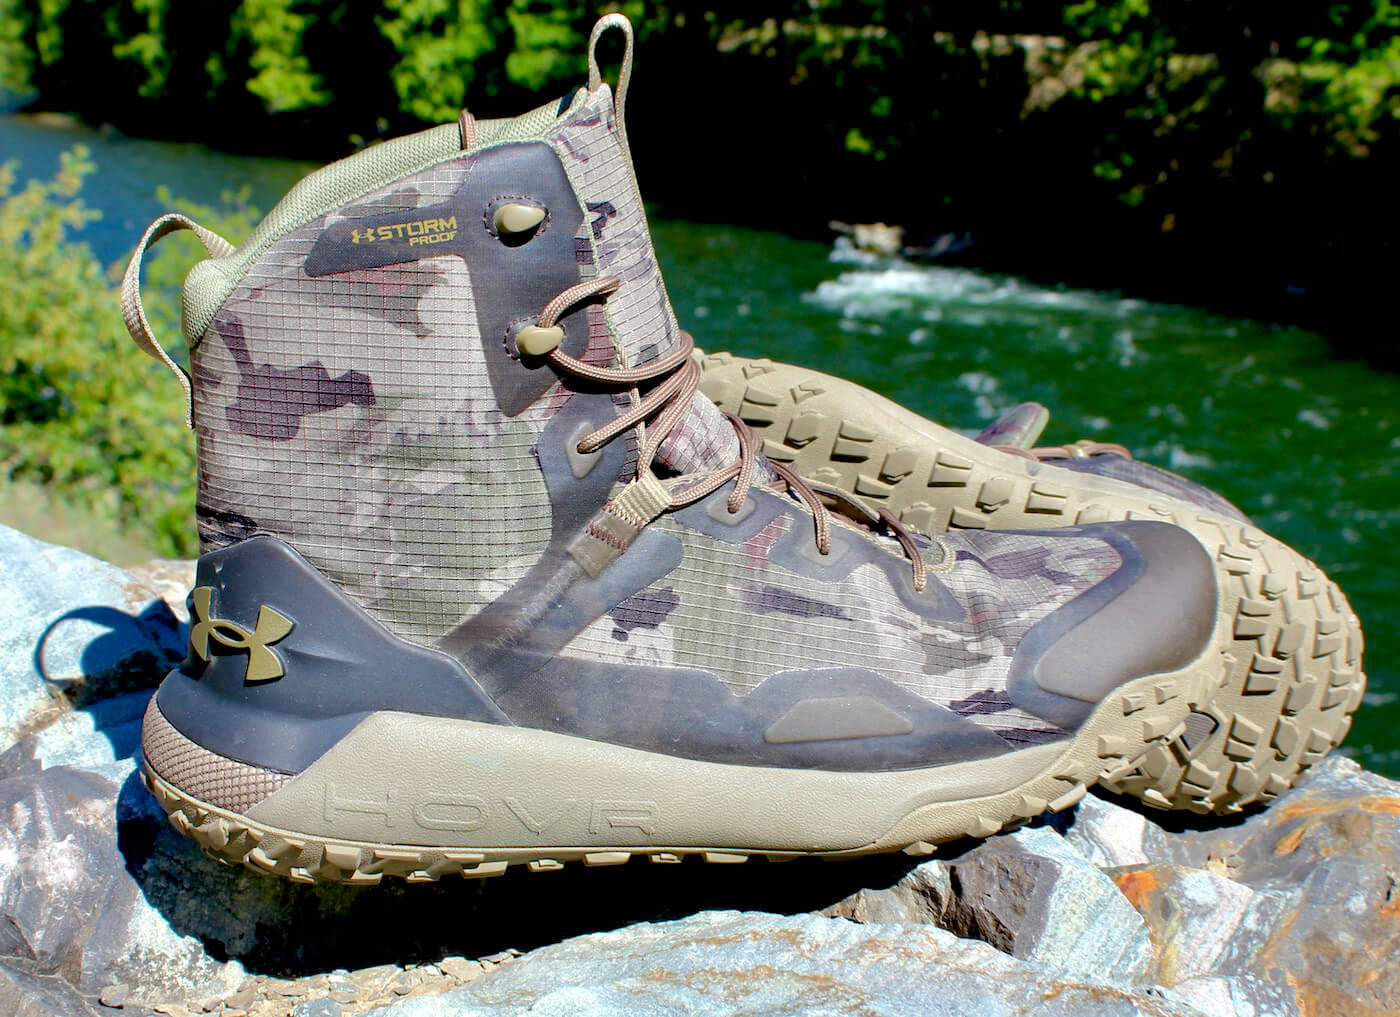 This review photo shows the Under Armour UA HOVR Dawn WP Boots on a rock during the initial testing phase by the author.